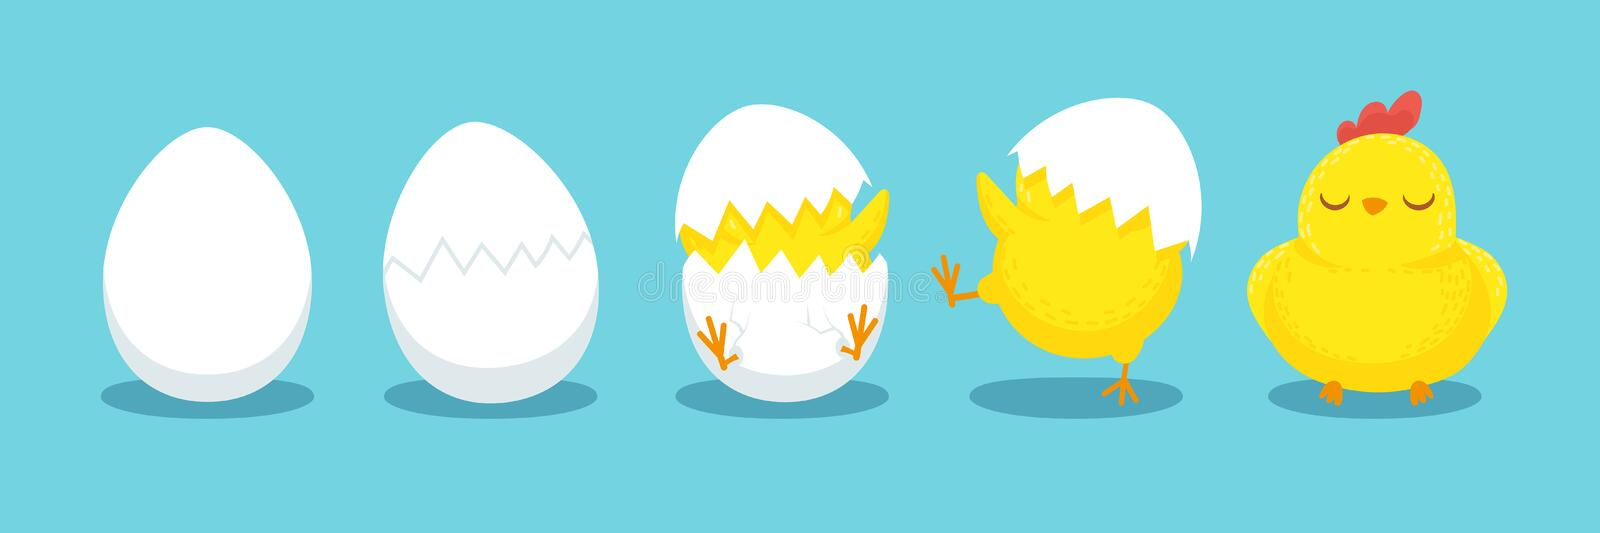 Chicken hatching. Cracked chick egg, hatch eggs and hatched easter chicks cartoon vector illustration royalty free illustration